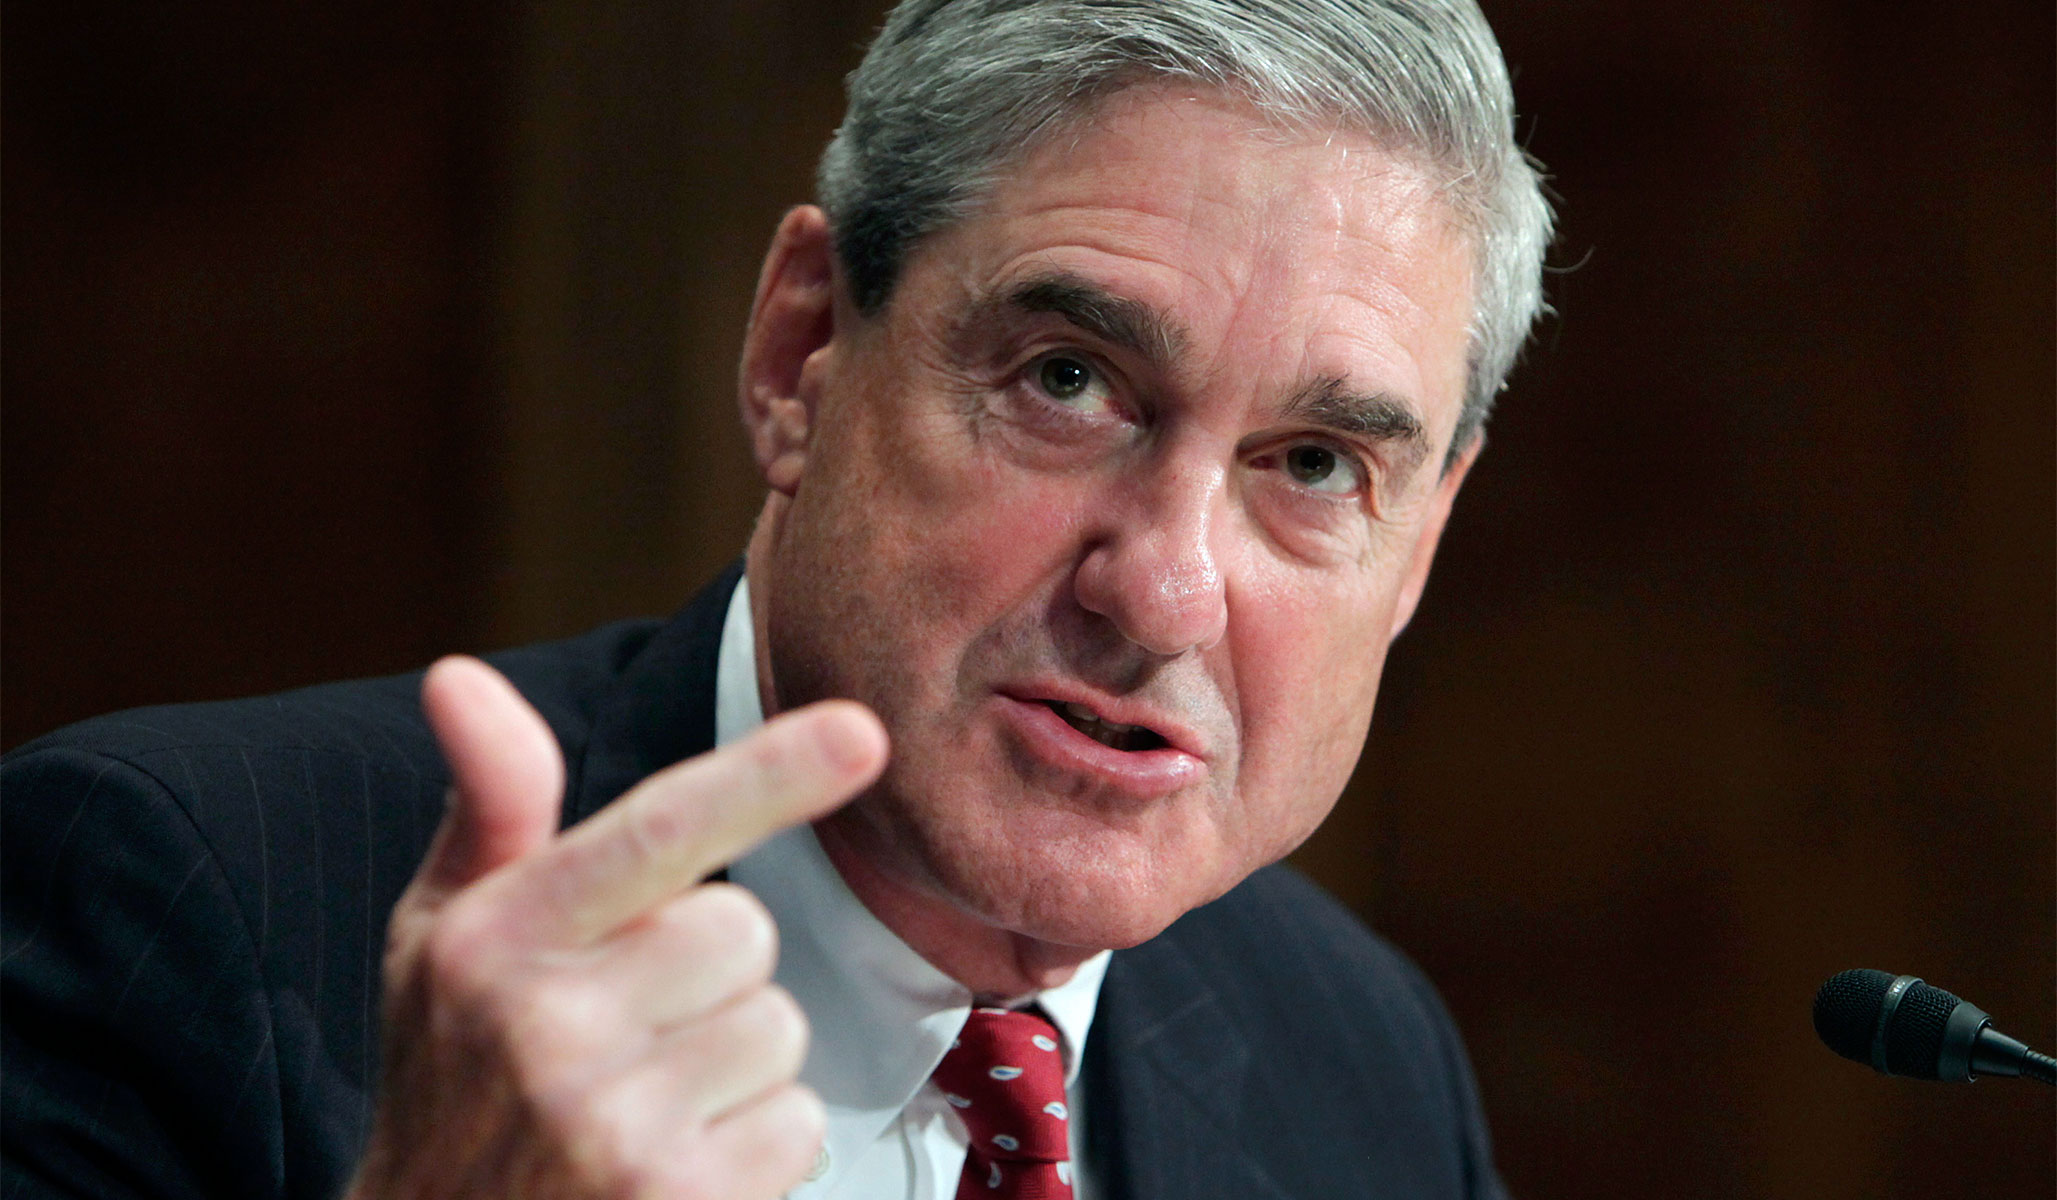 Update; The Gatewaypundit Put Up The Story Again. Robert Mueller Accused of Rape